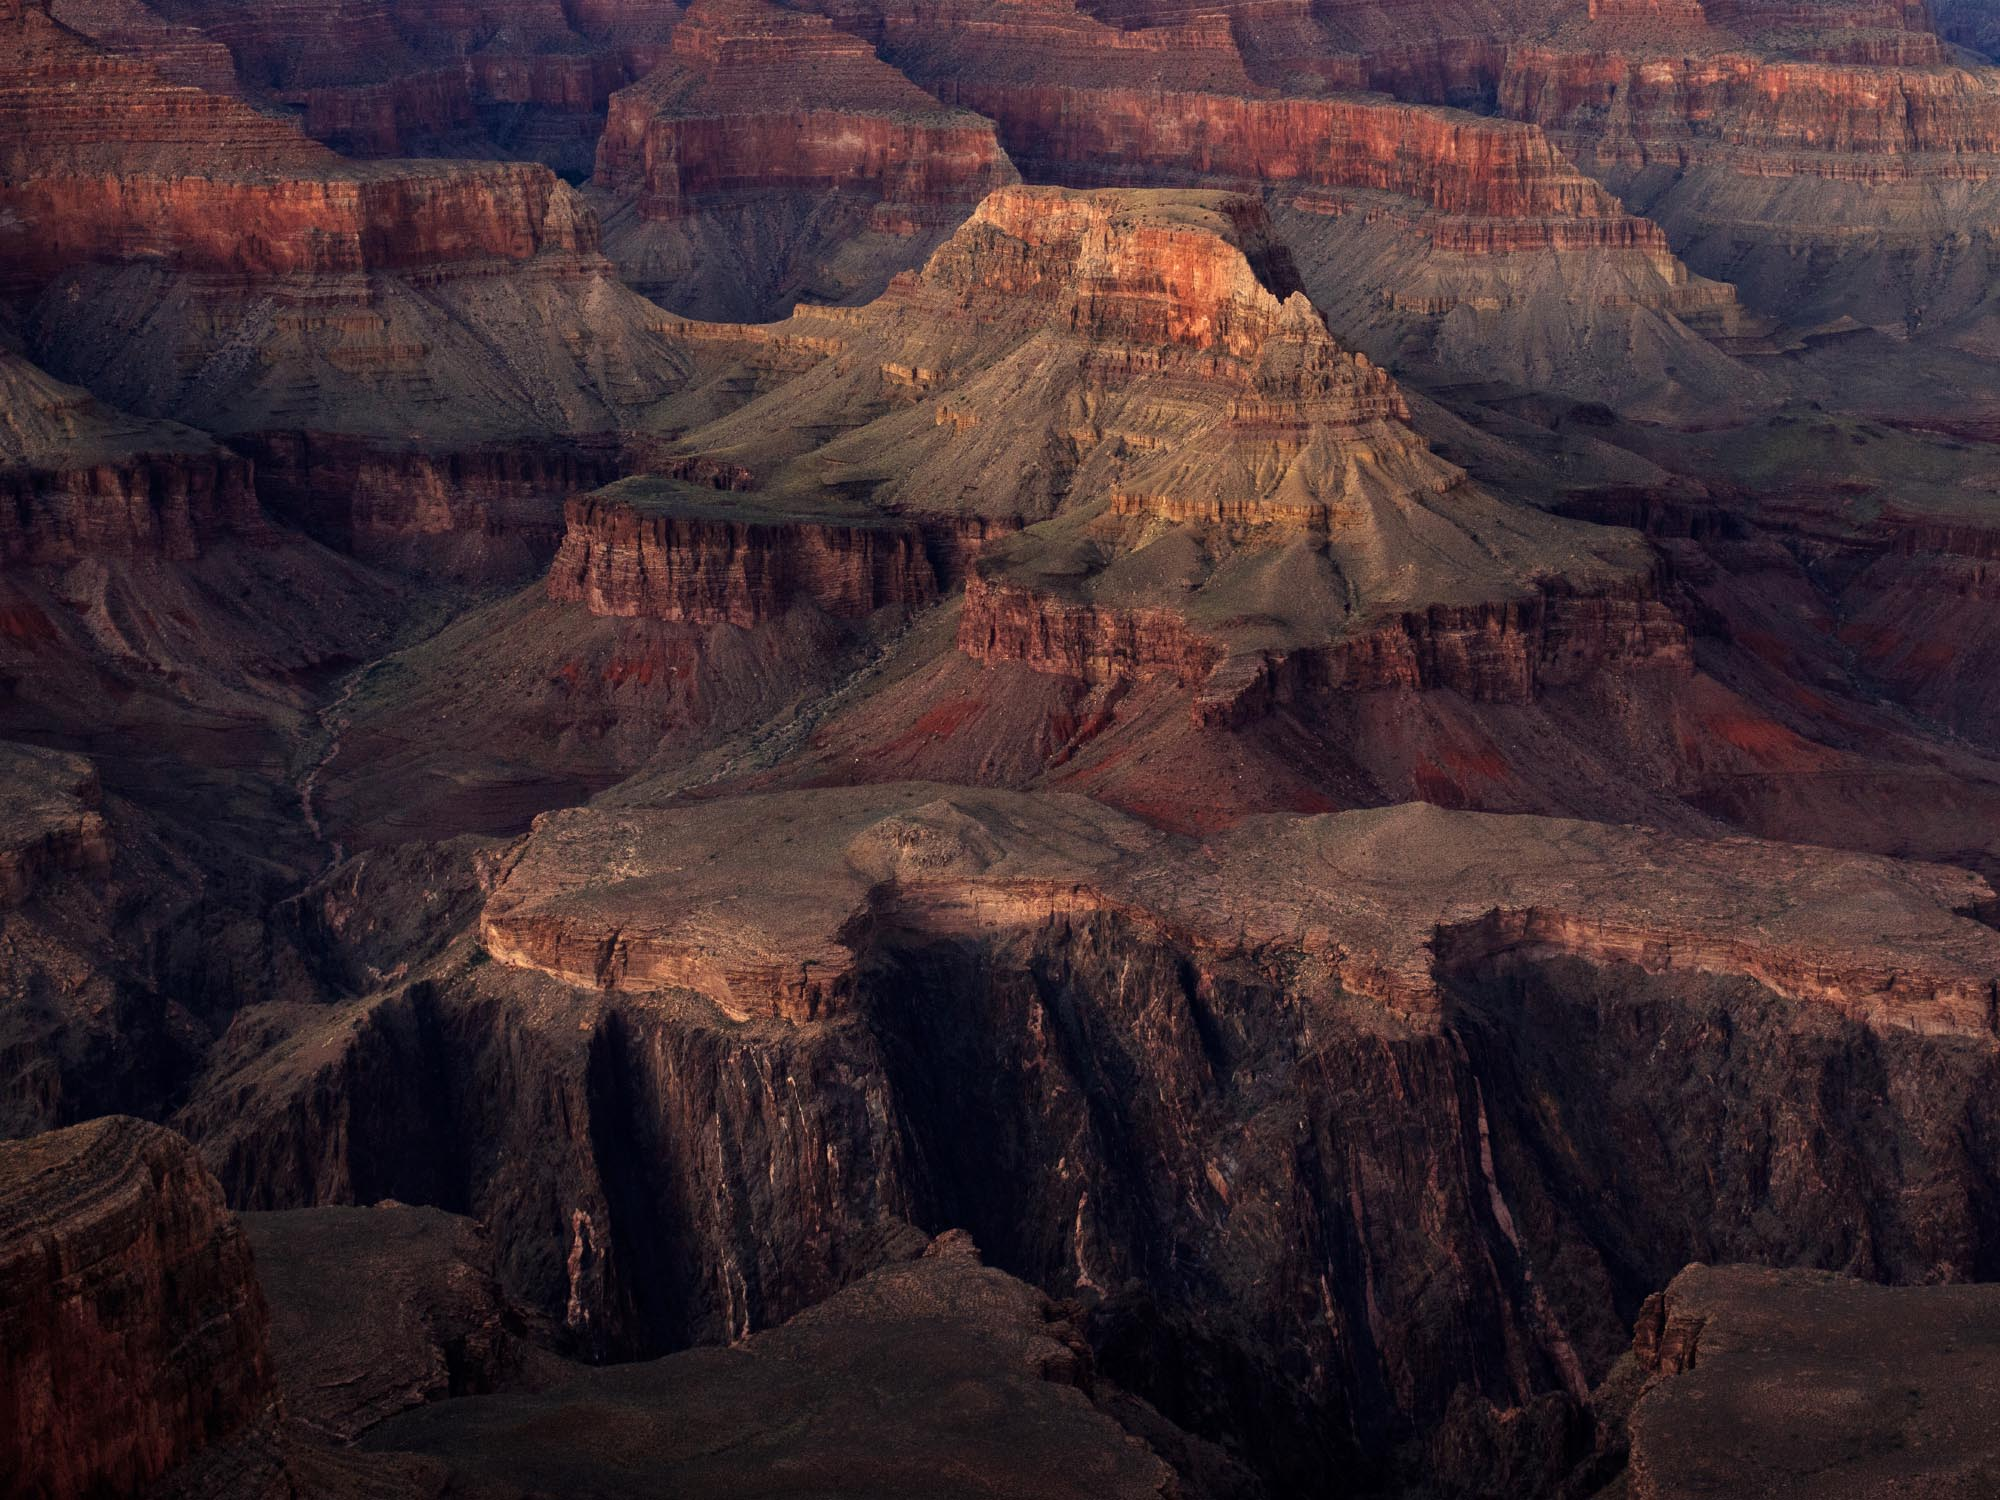 Grand Canyon after sunset.